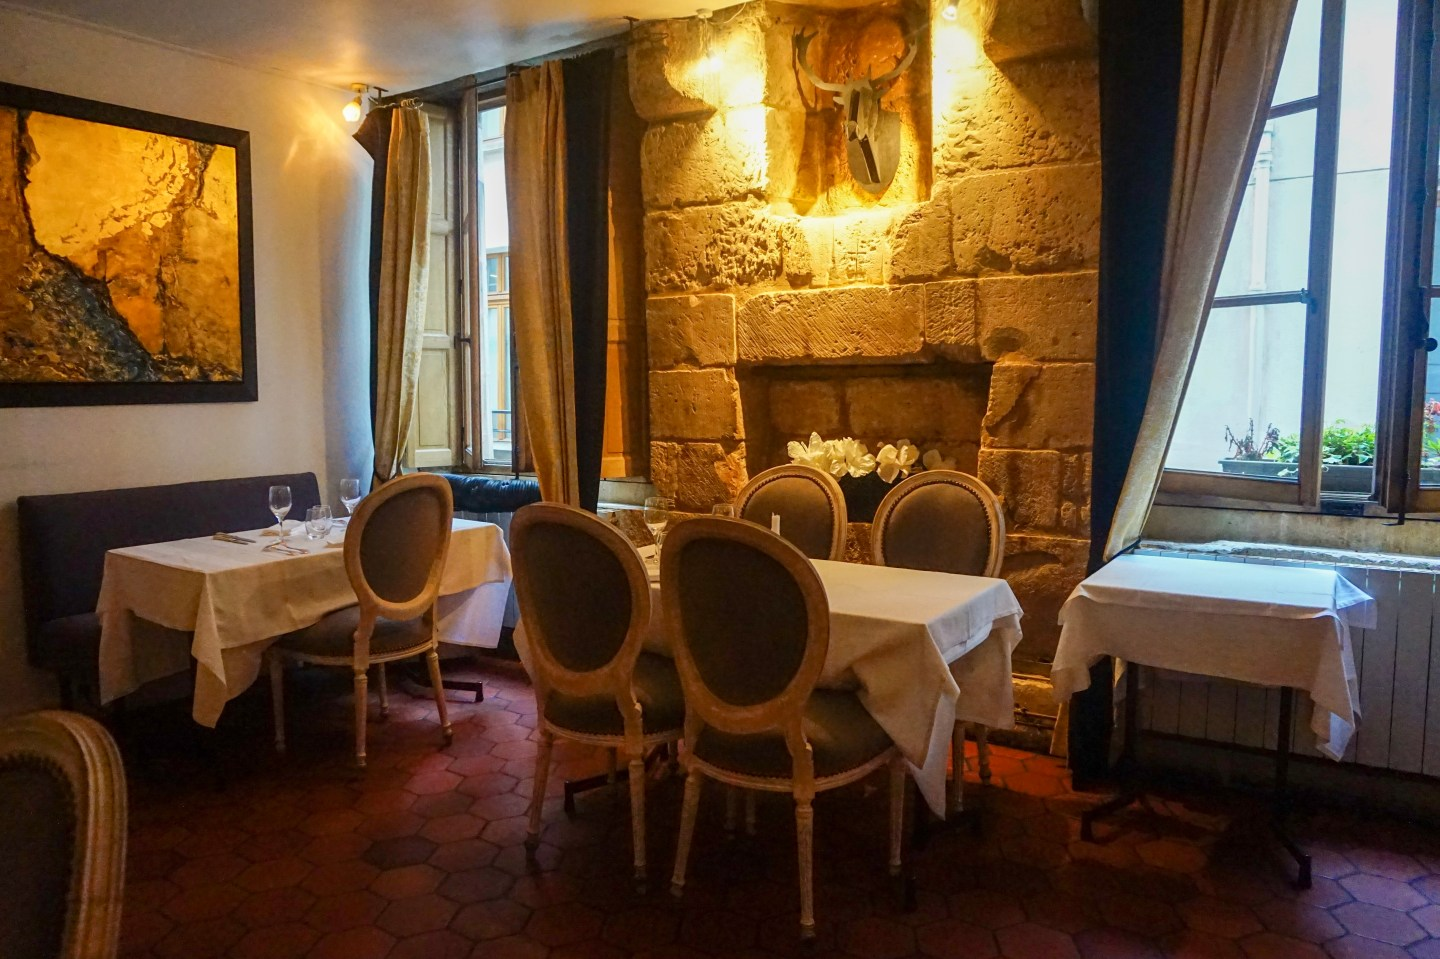 Auberge Nicolas Flamel - unique things to do in Paris, unusual things to do in Paris, quirky things to do in Paris